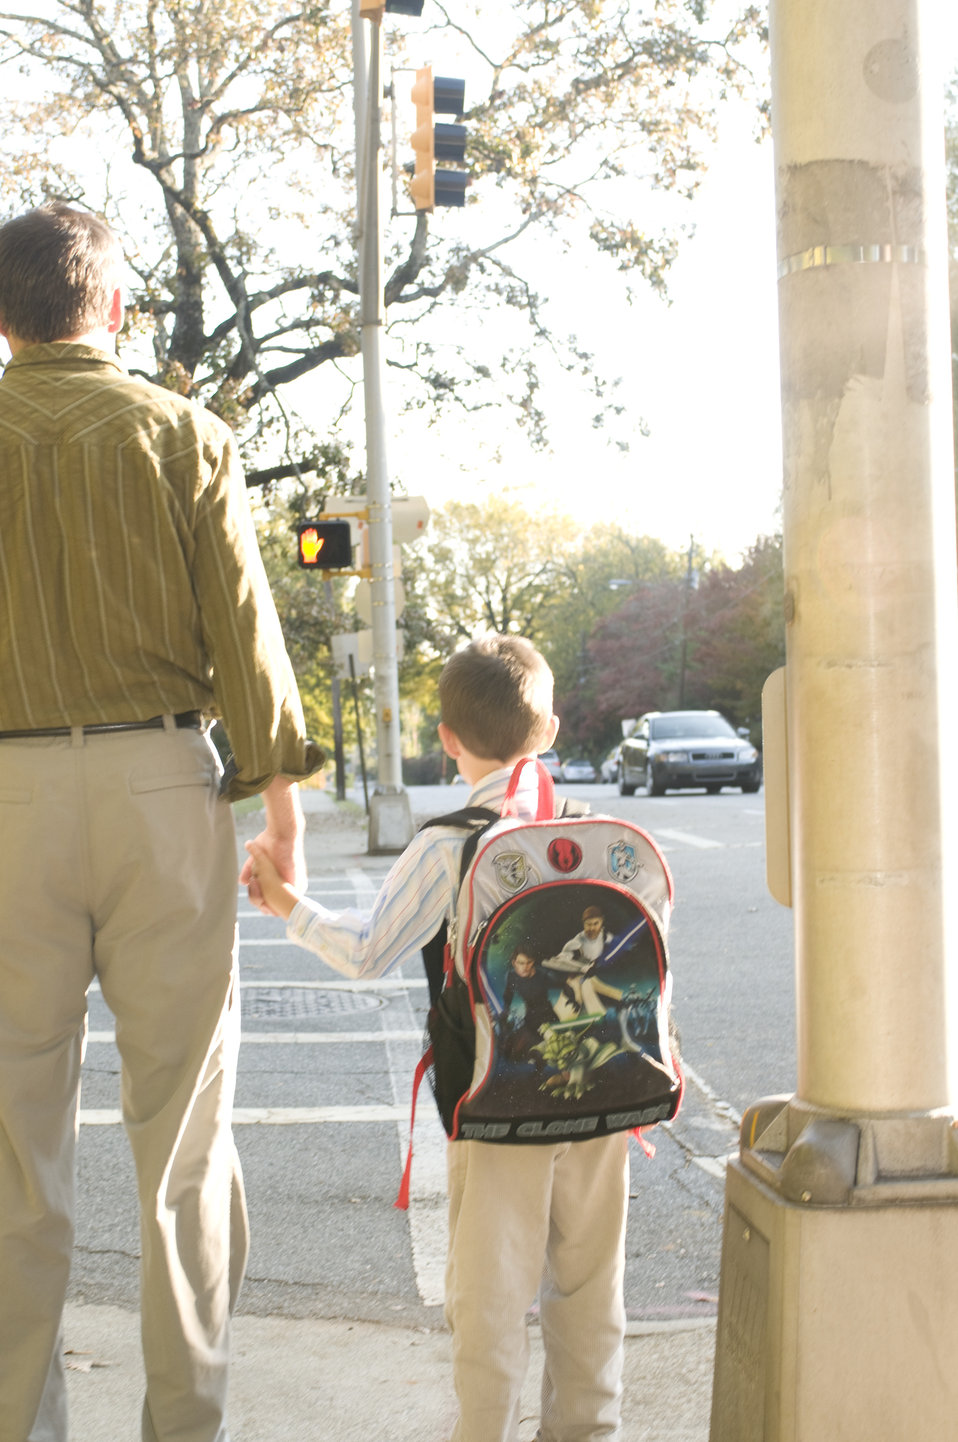 This father was shown walking on a Georgian city street, while to his left, he was holding hands with his young son. They had paused at an i